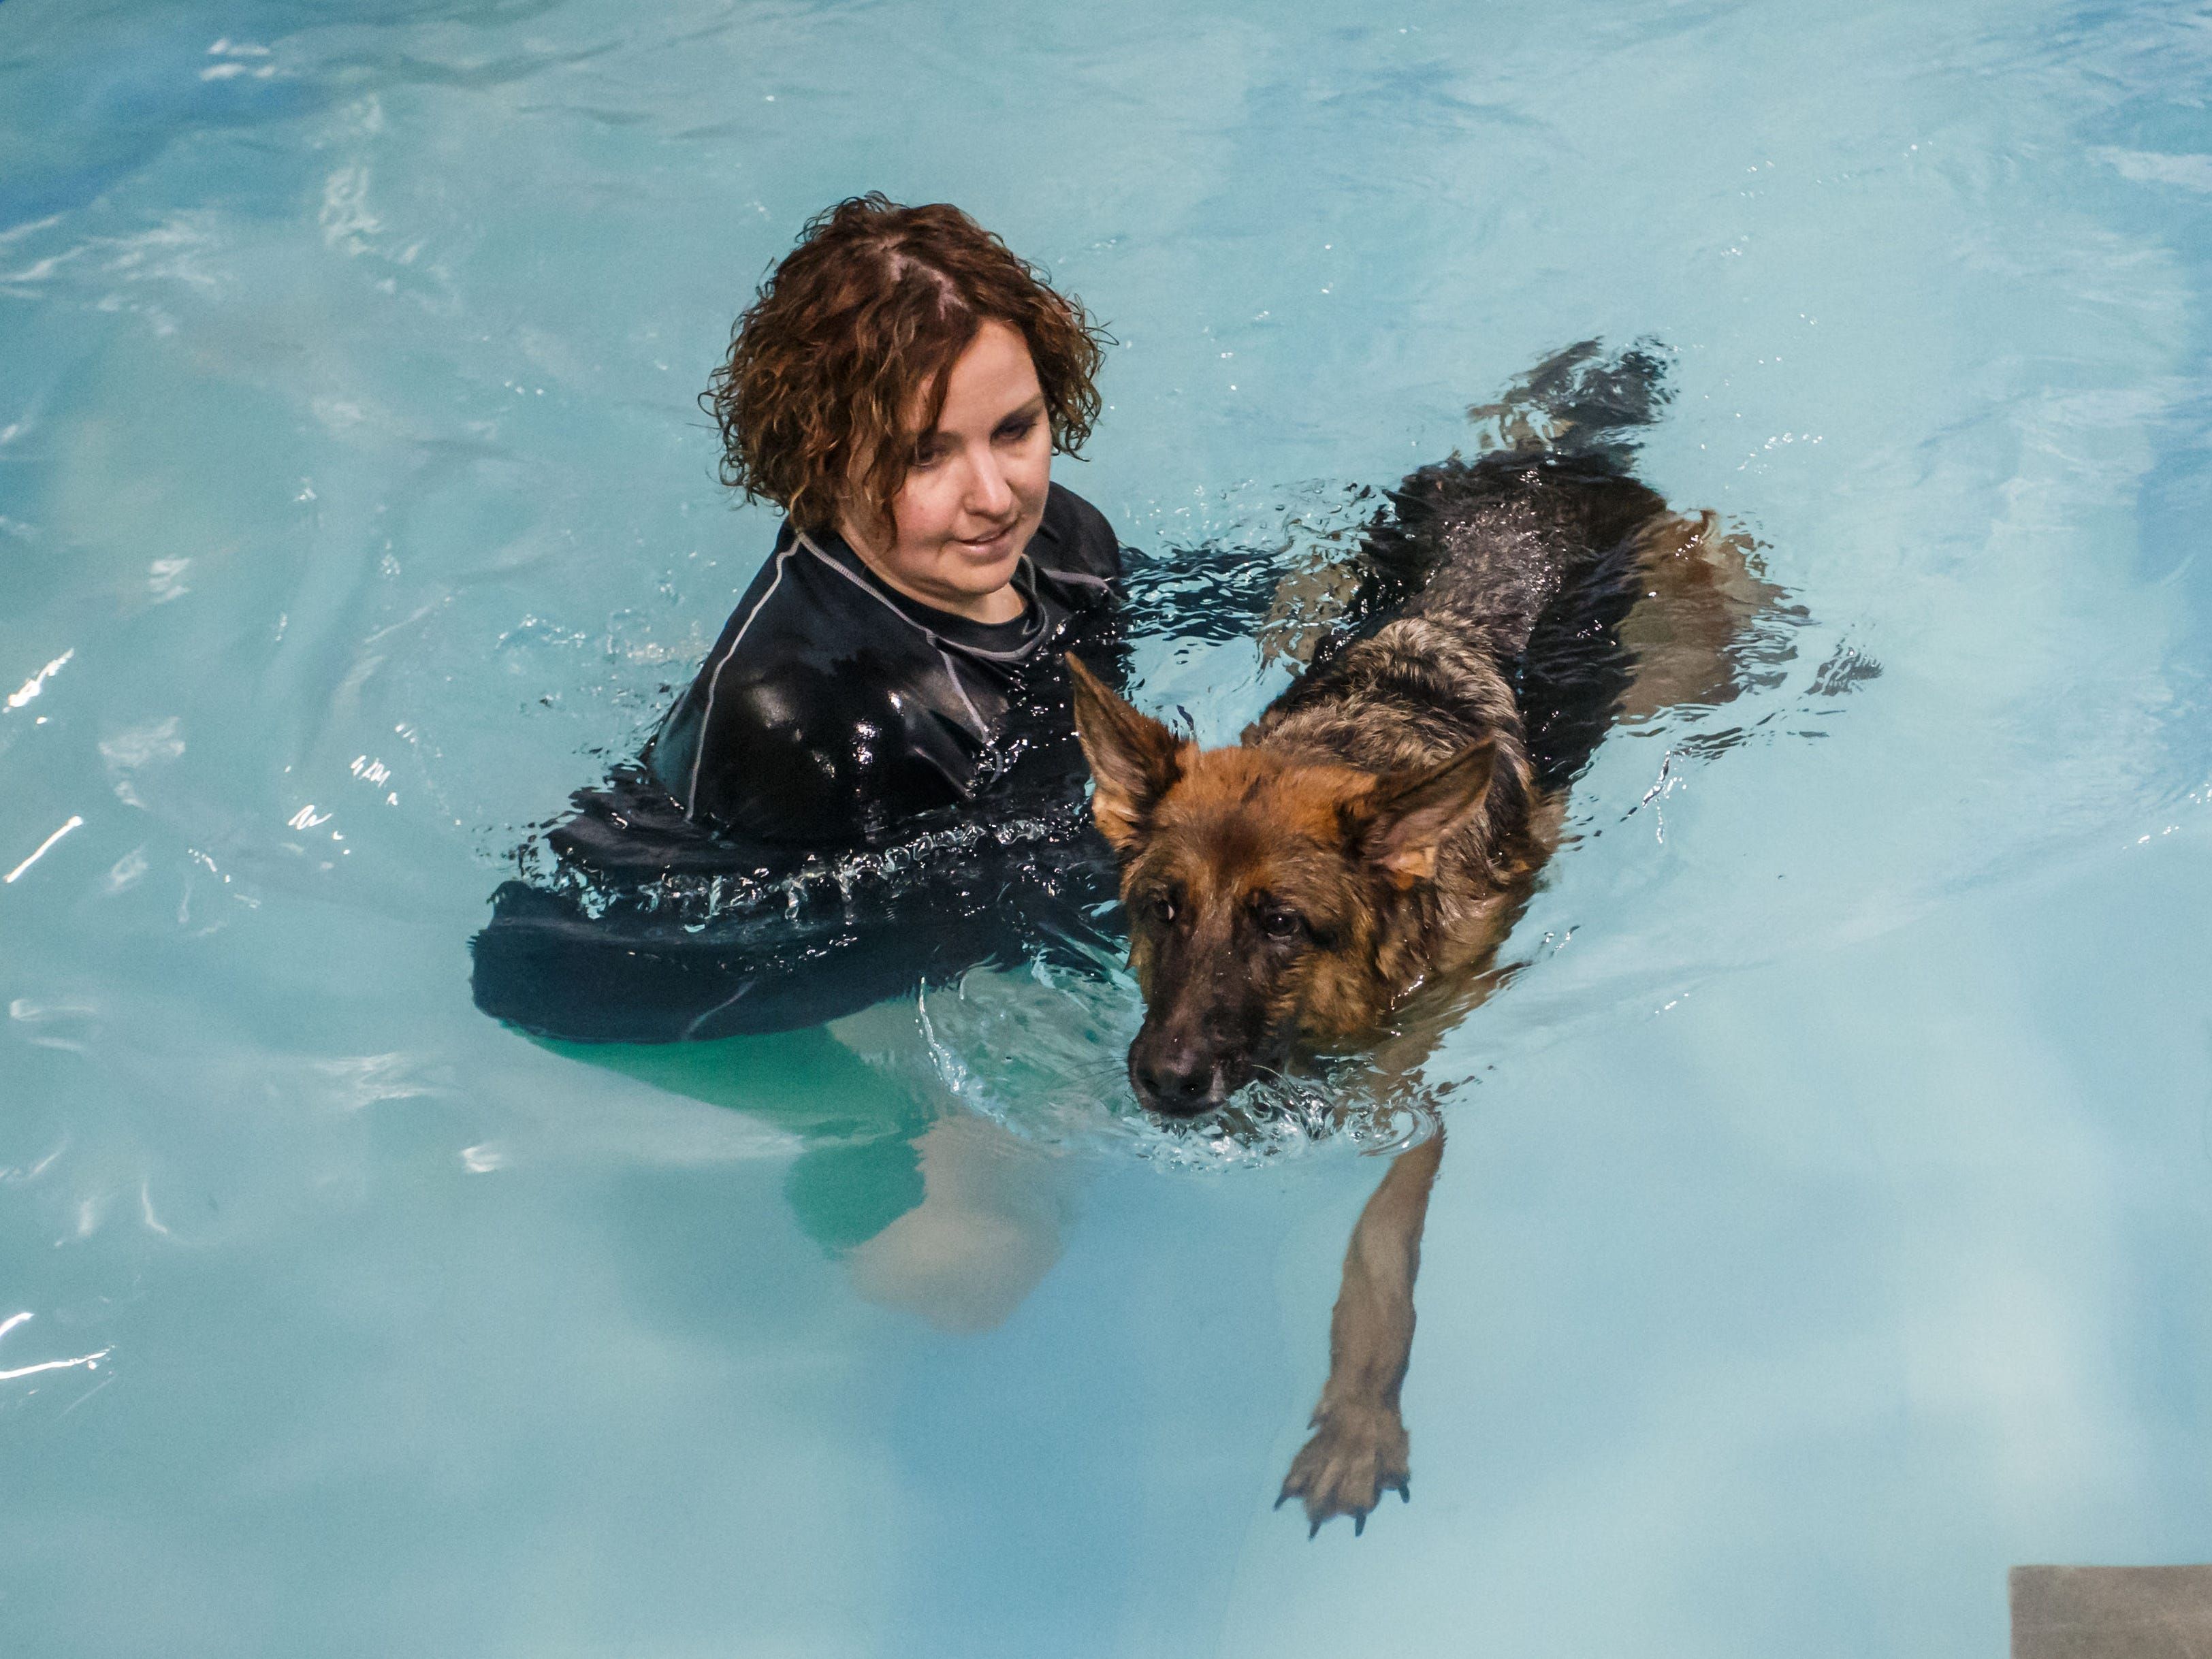 Owner/trainer Becky Pease of Aqua Therapups in Slinger works with a German Shepherd in the indoor heated dog pool at the facility on Monday, Oct. 29, 2018. The business is opening a second location in Brookfield this November.